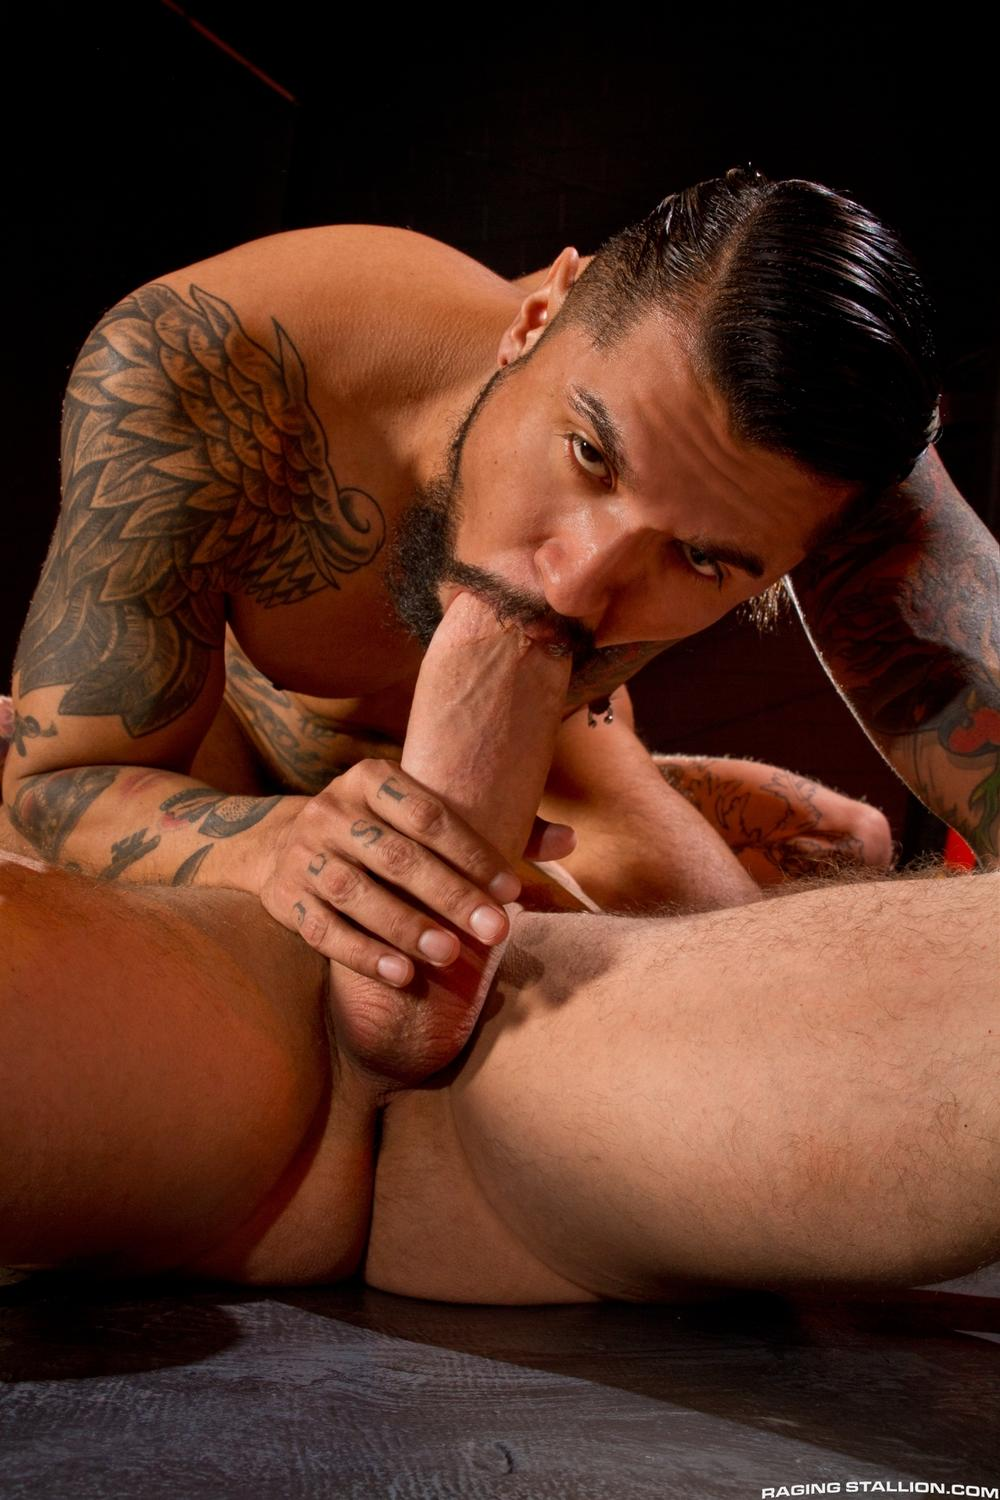 Boomer Banks fuck Rocco Steele gay hot daddy dude men porn clusterfuck